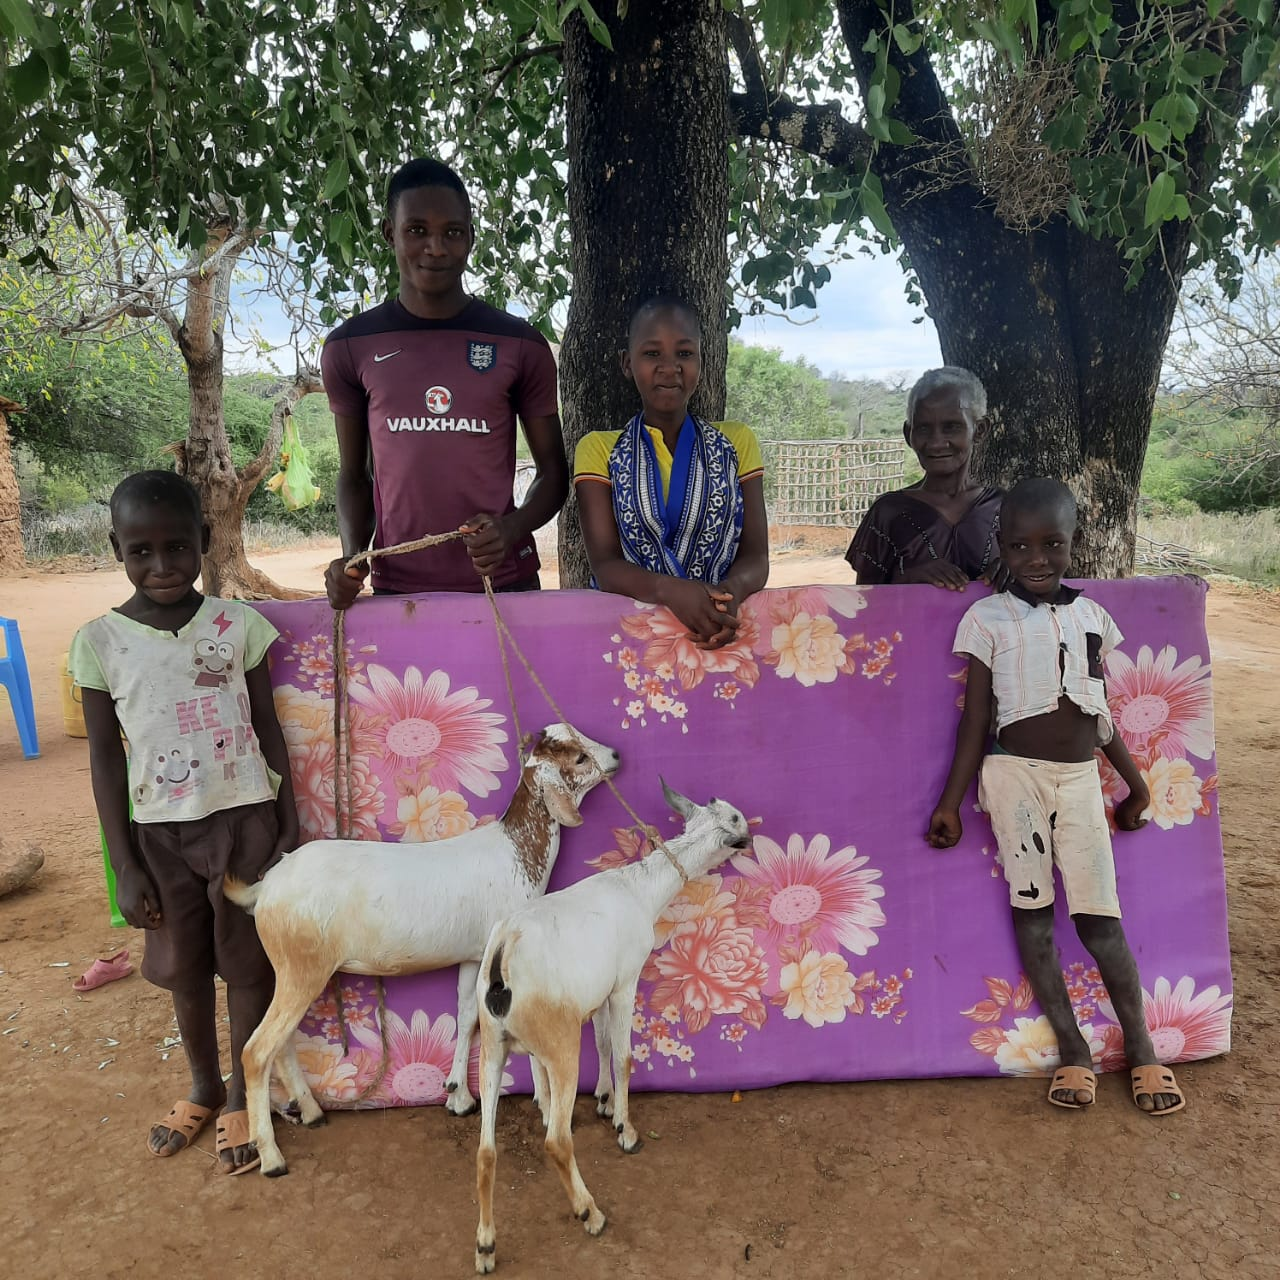 kanuu family in kenya with their new mattress and goats